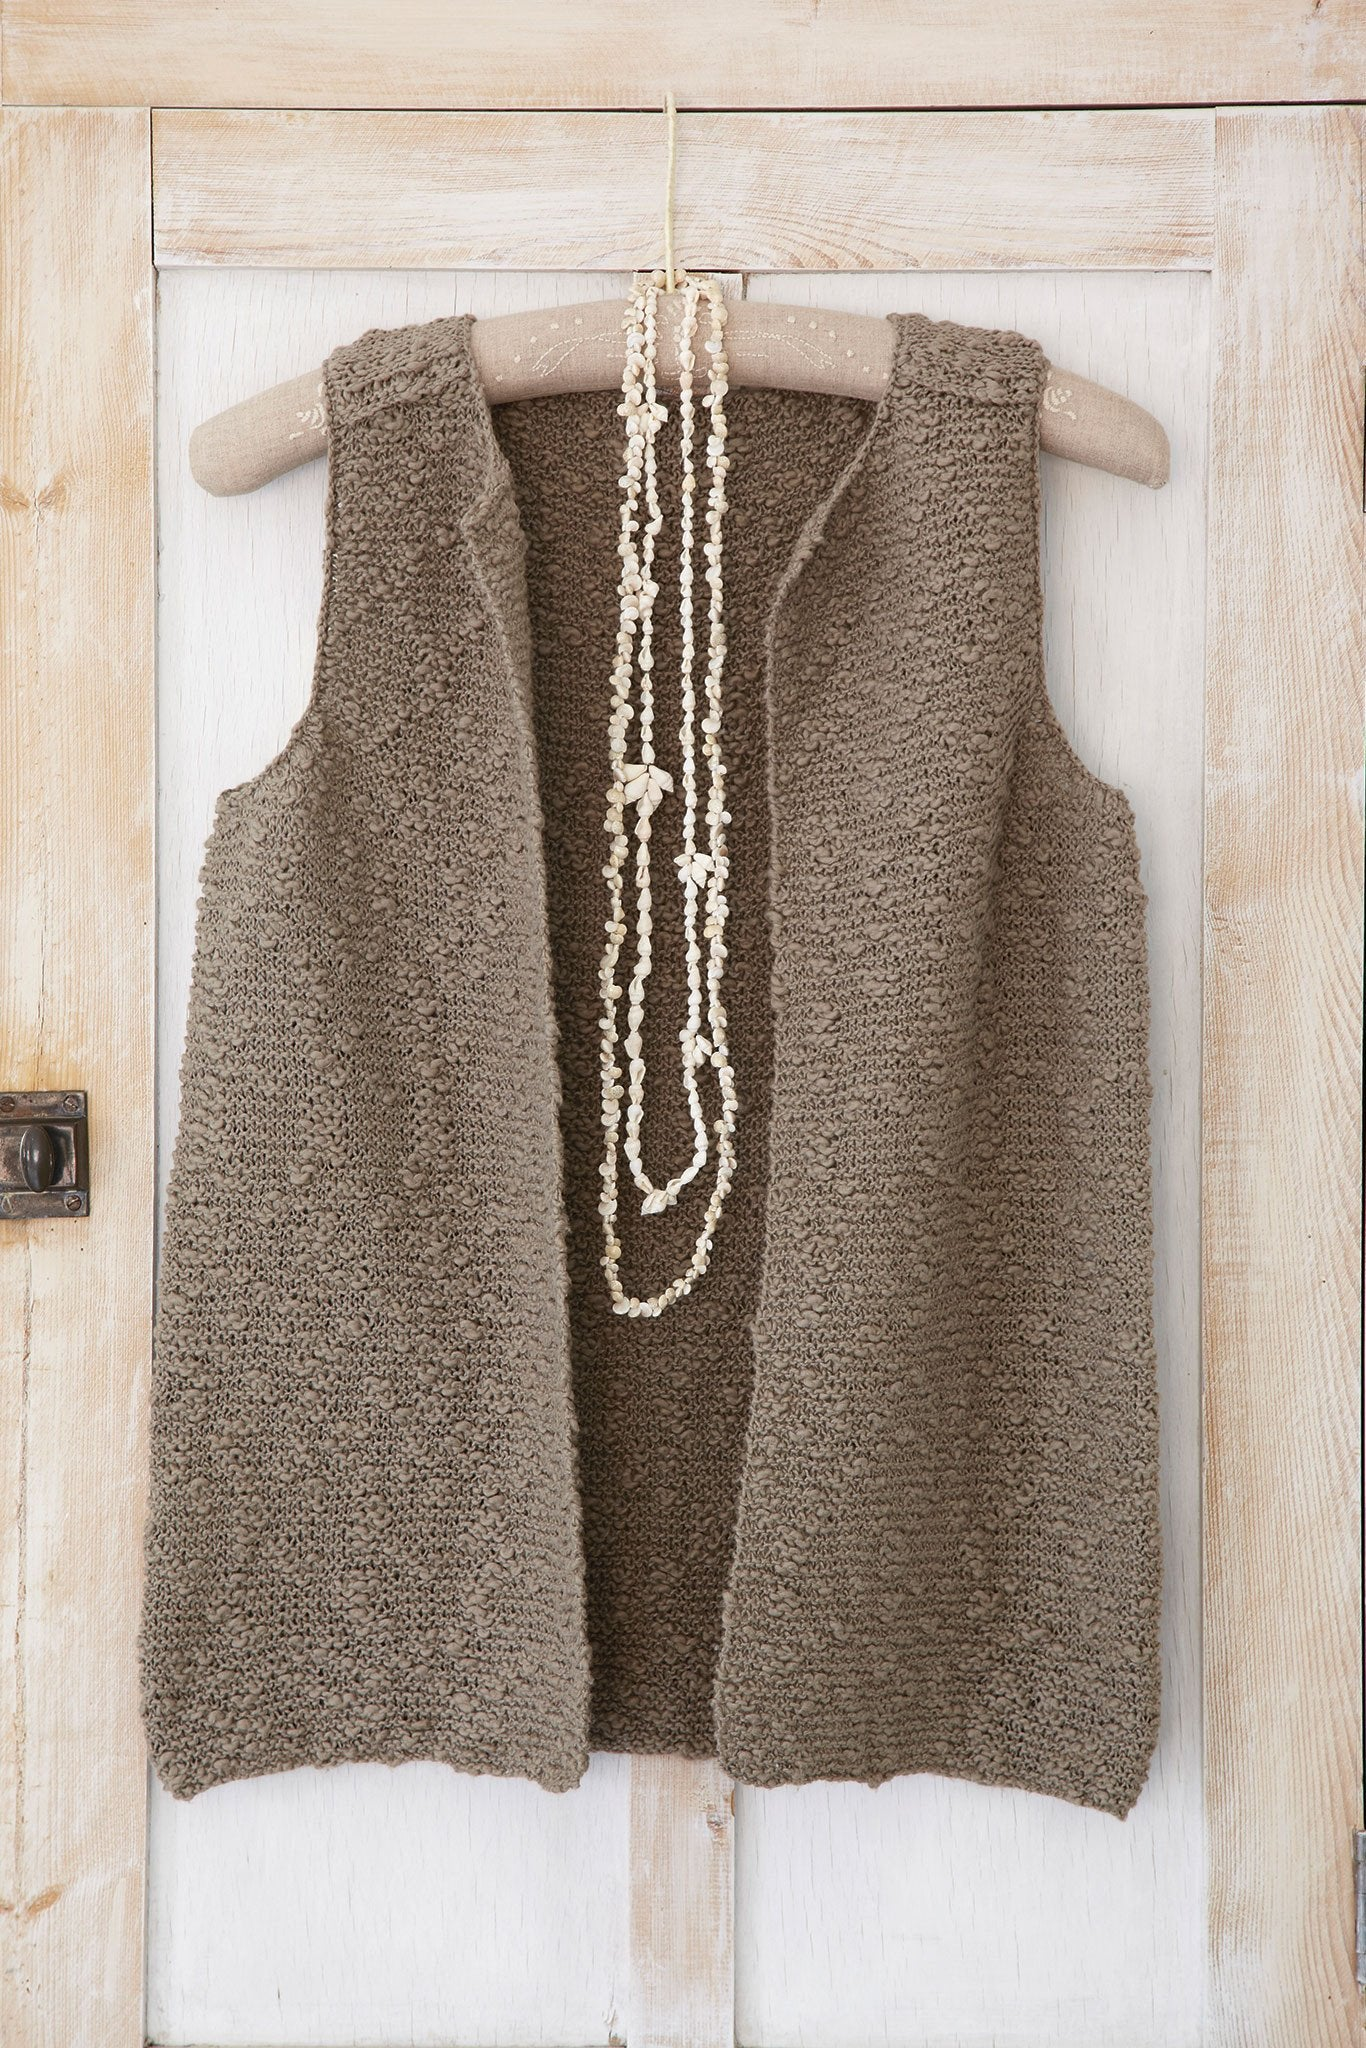 Free Knitting Pattern For A Gilet : Simple Ladies Gilet Knitting Pattern   The Knitting Network